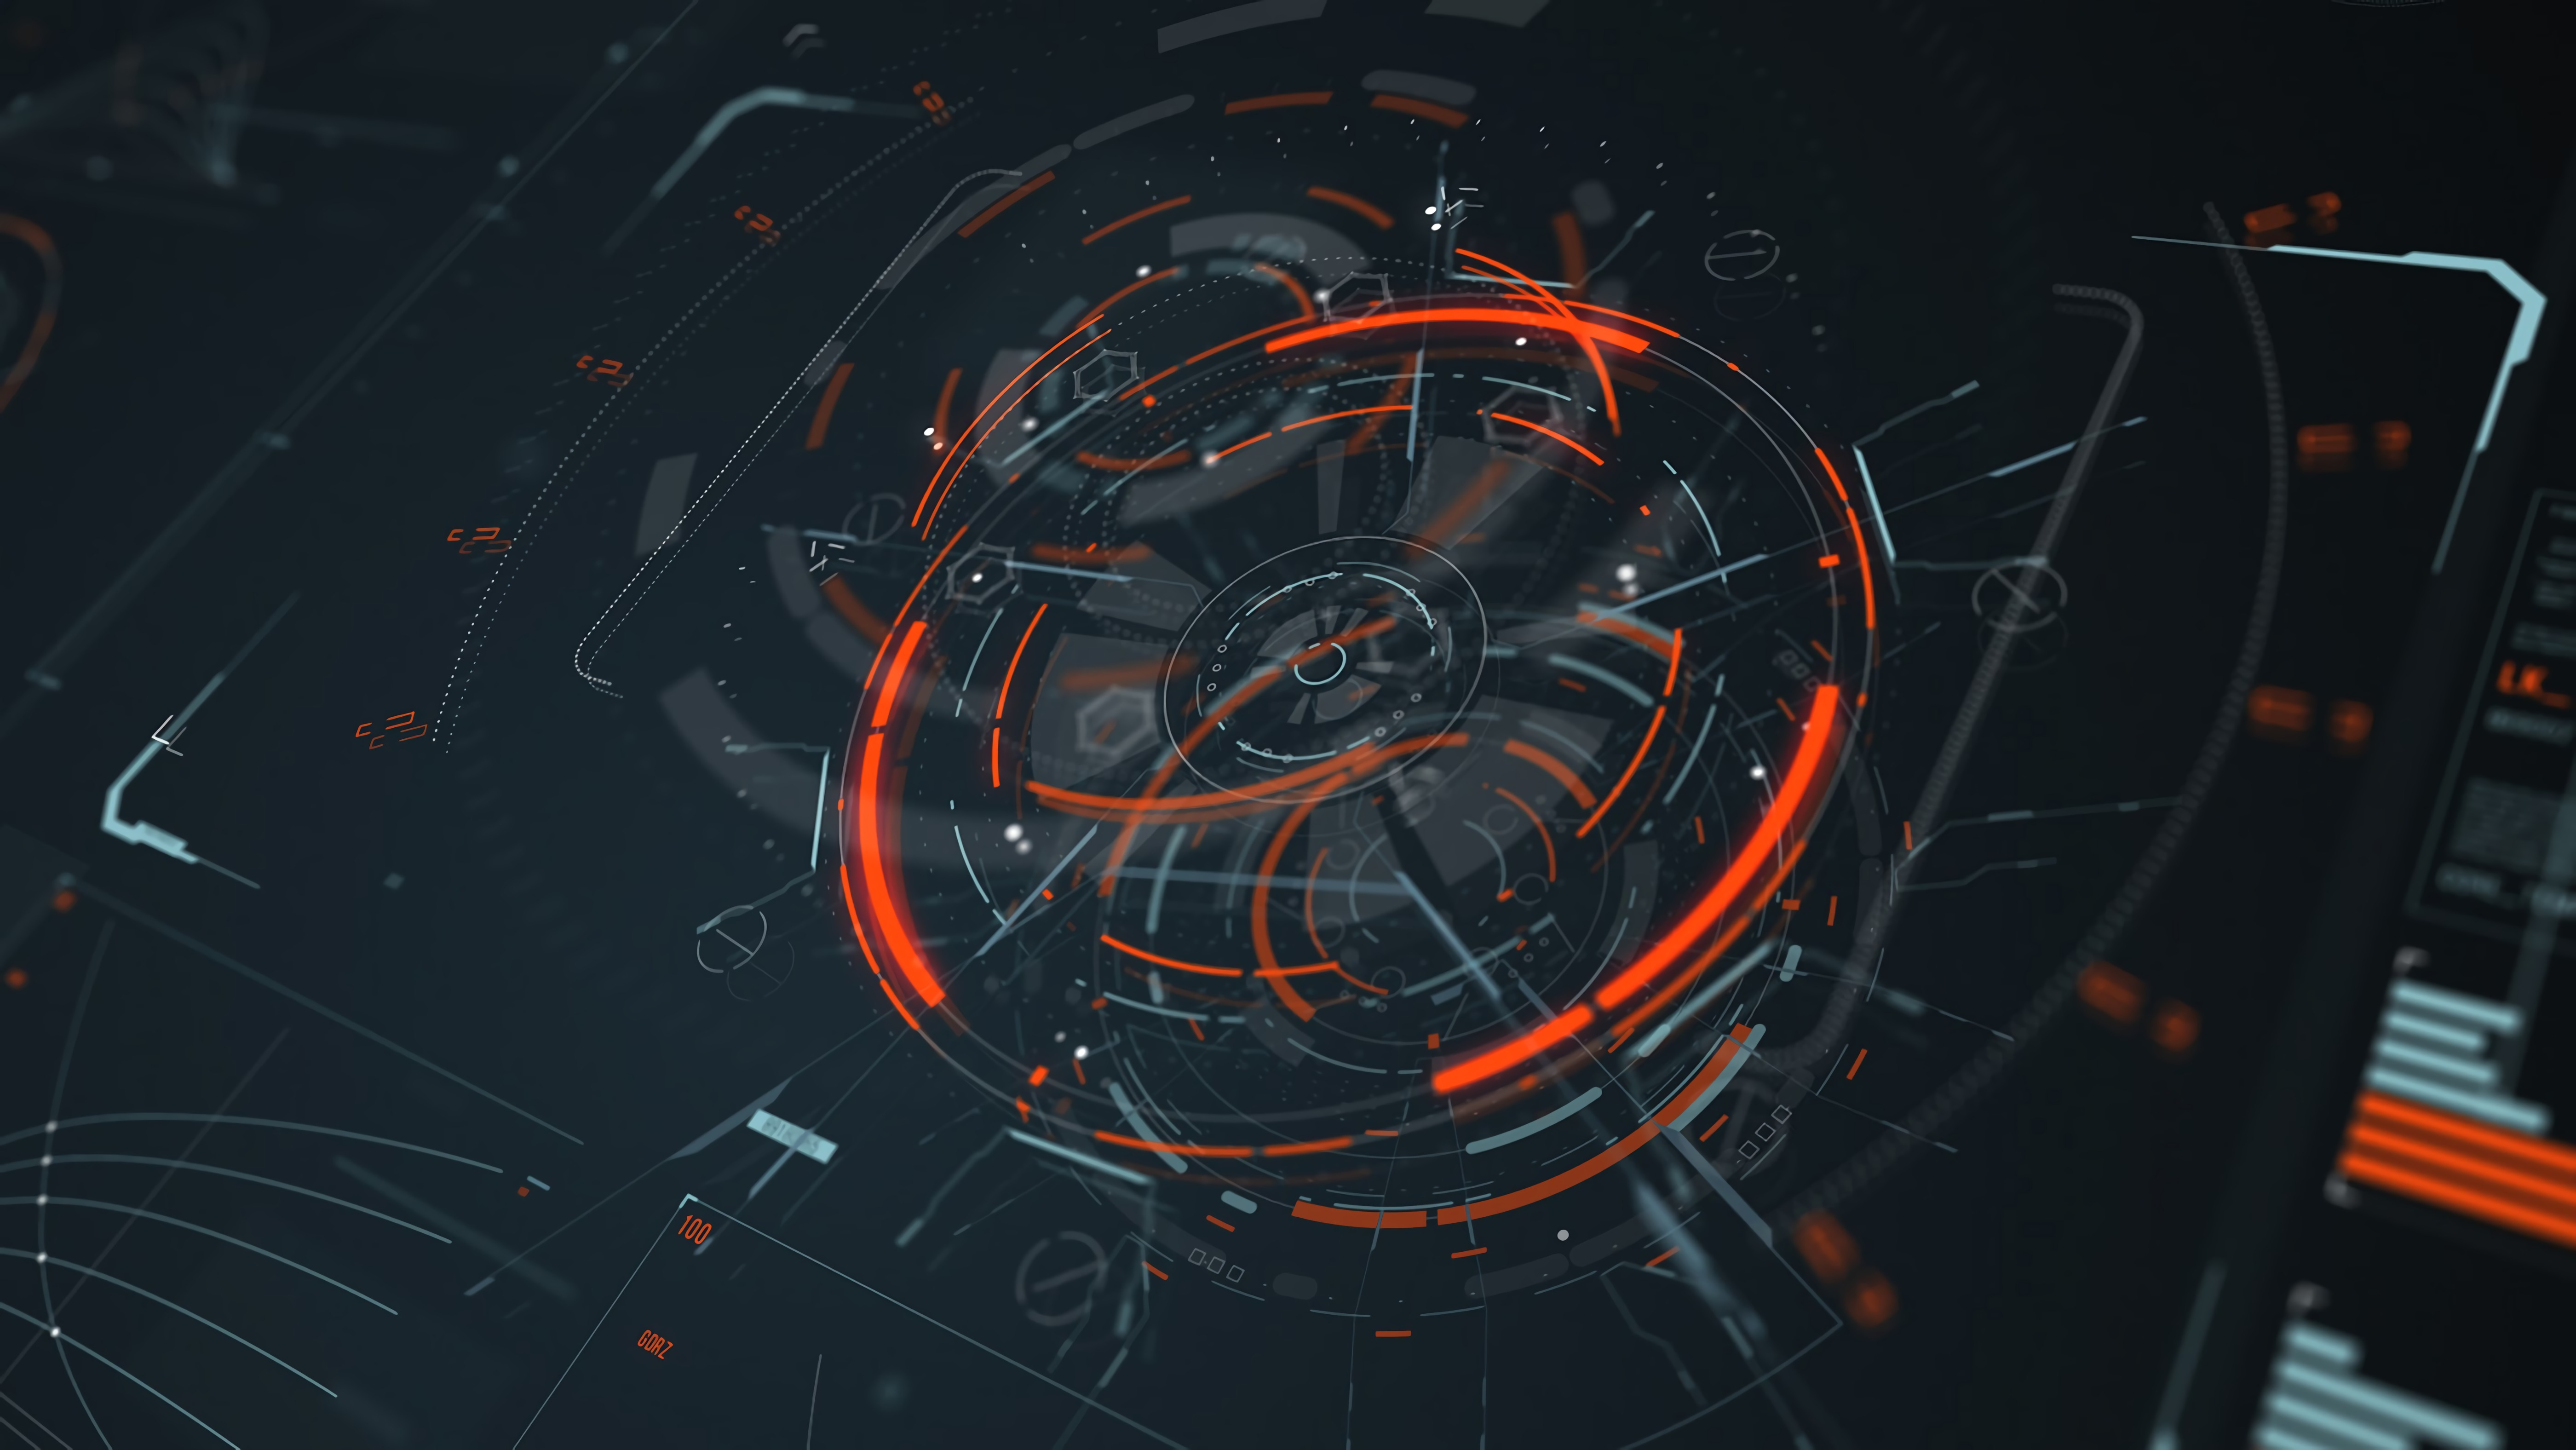 75990 download wallpaper Technology, Circles, Lines, Sci-Fi, Technologies, Elements, Digital, Scheme, Hologram screensavers and pictures for free